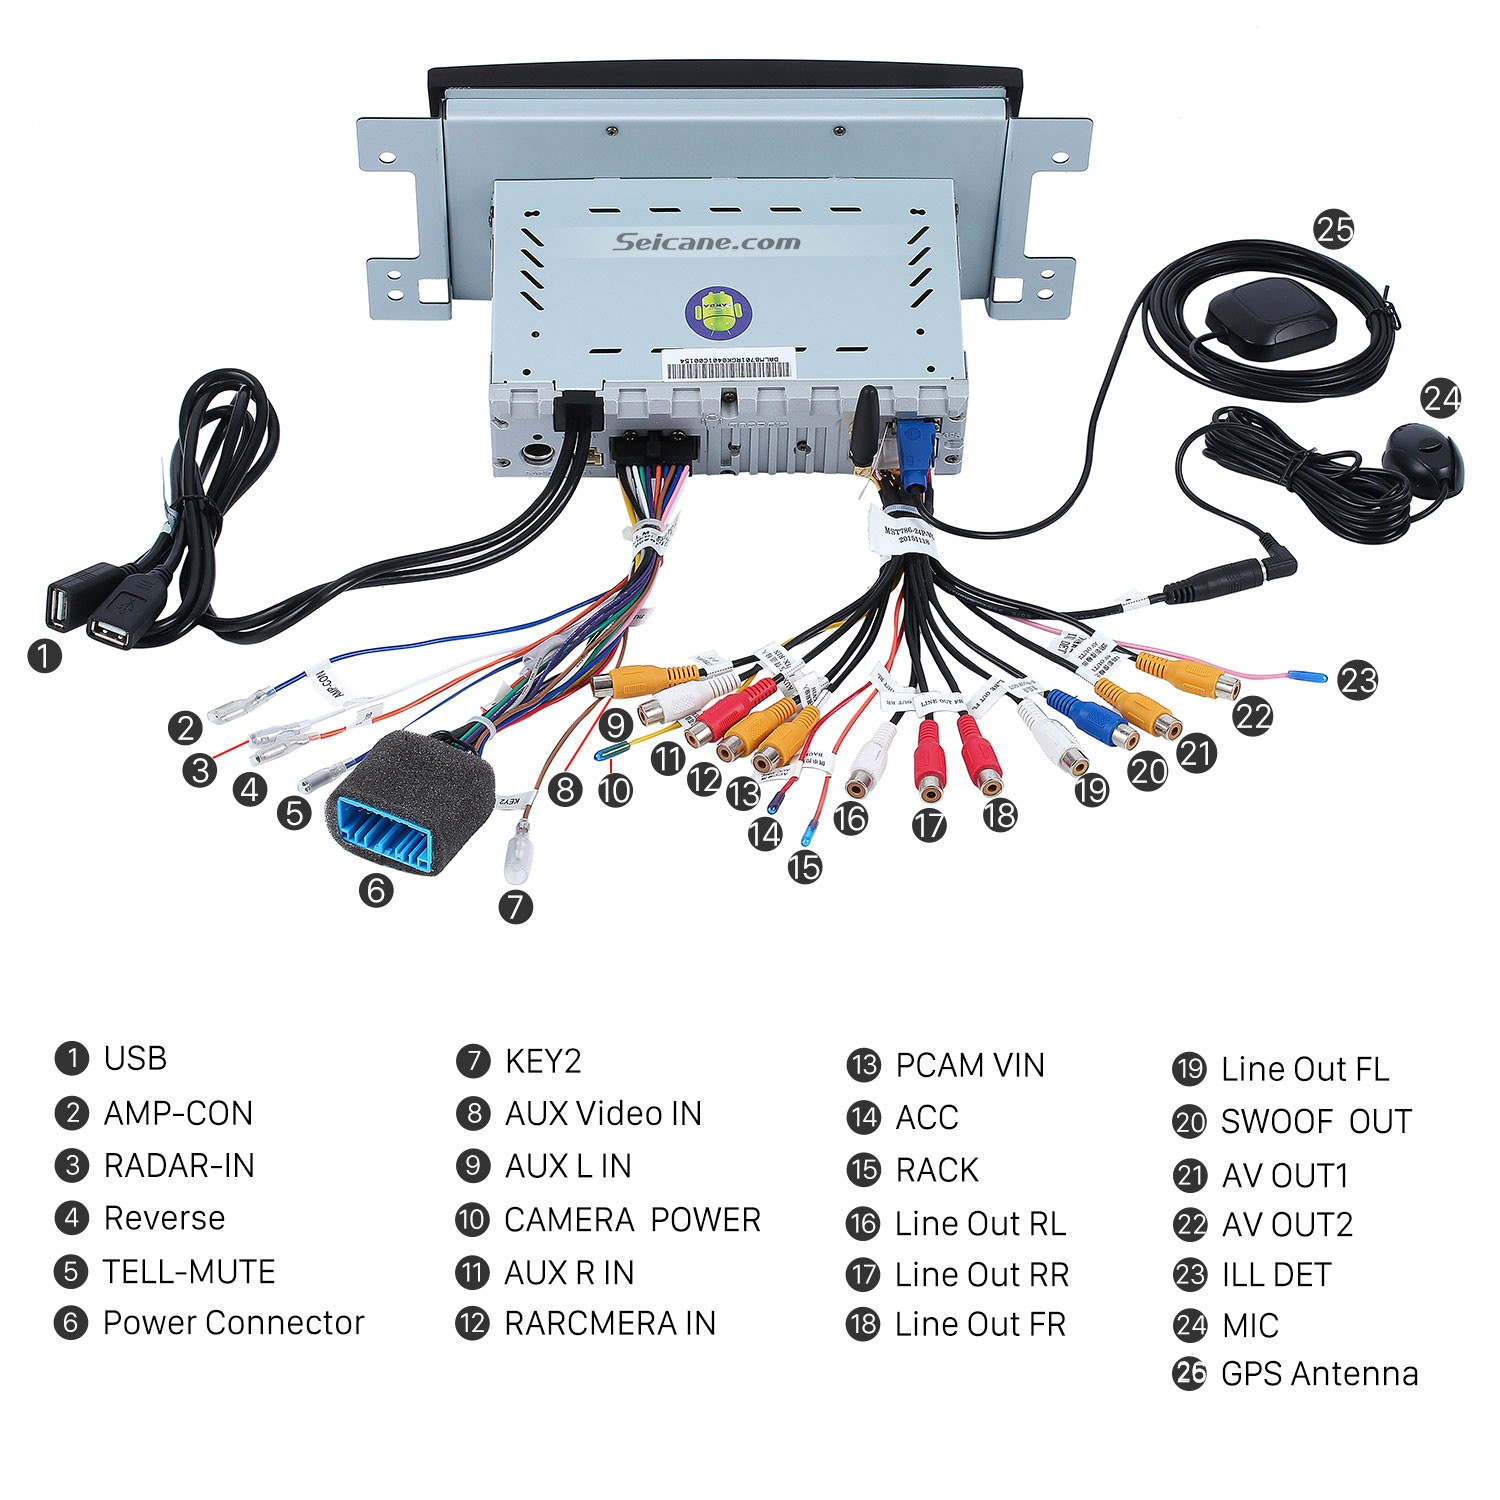 Suzuki Garmin Car Stereo Wiring Basic Guide Diagram Audio Monitor Images Gallery